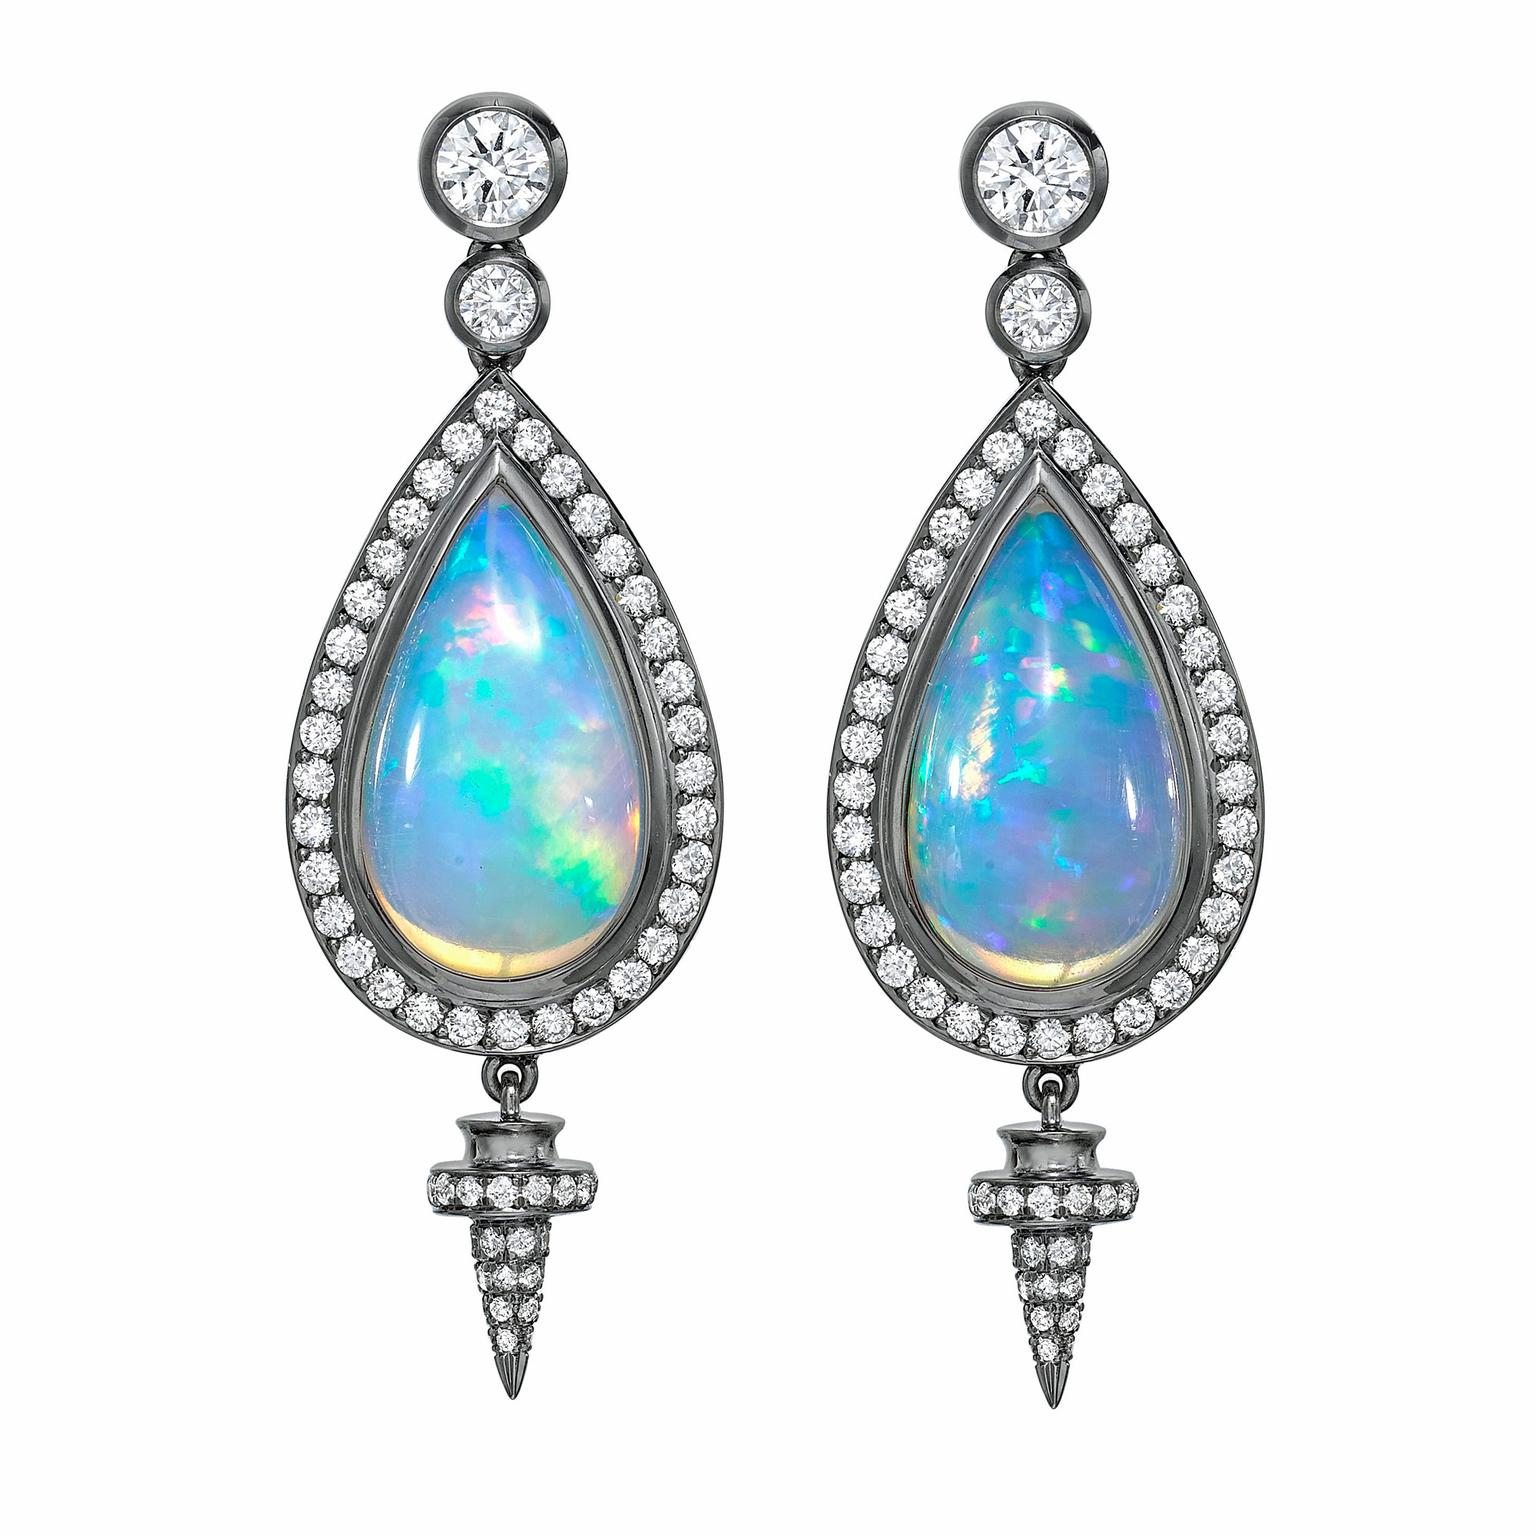 Theo Fennell opal earrings